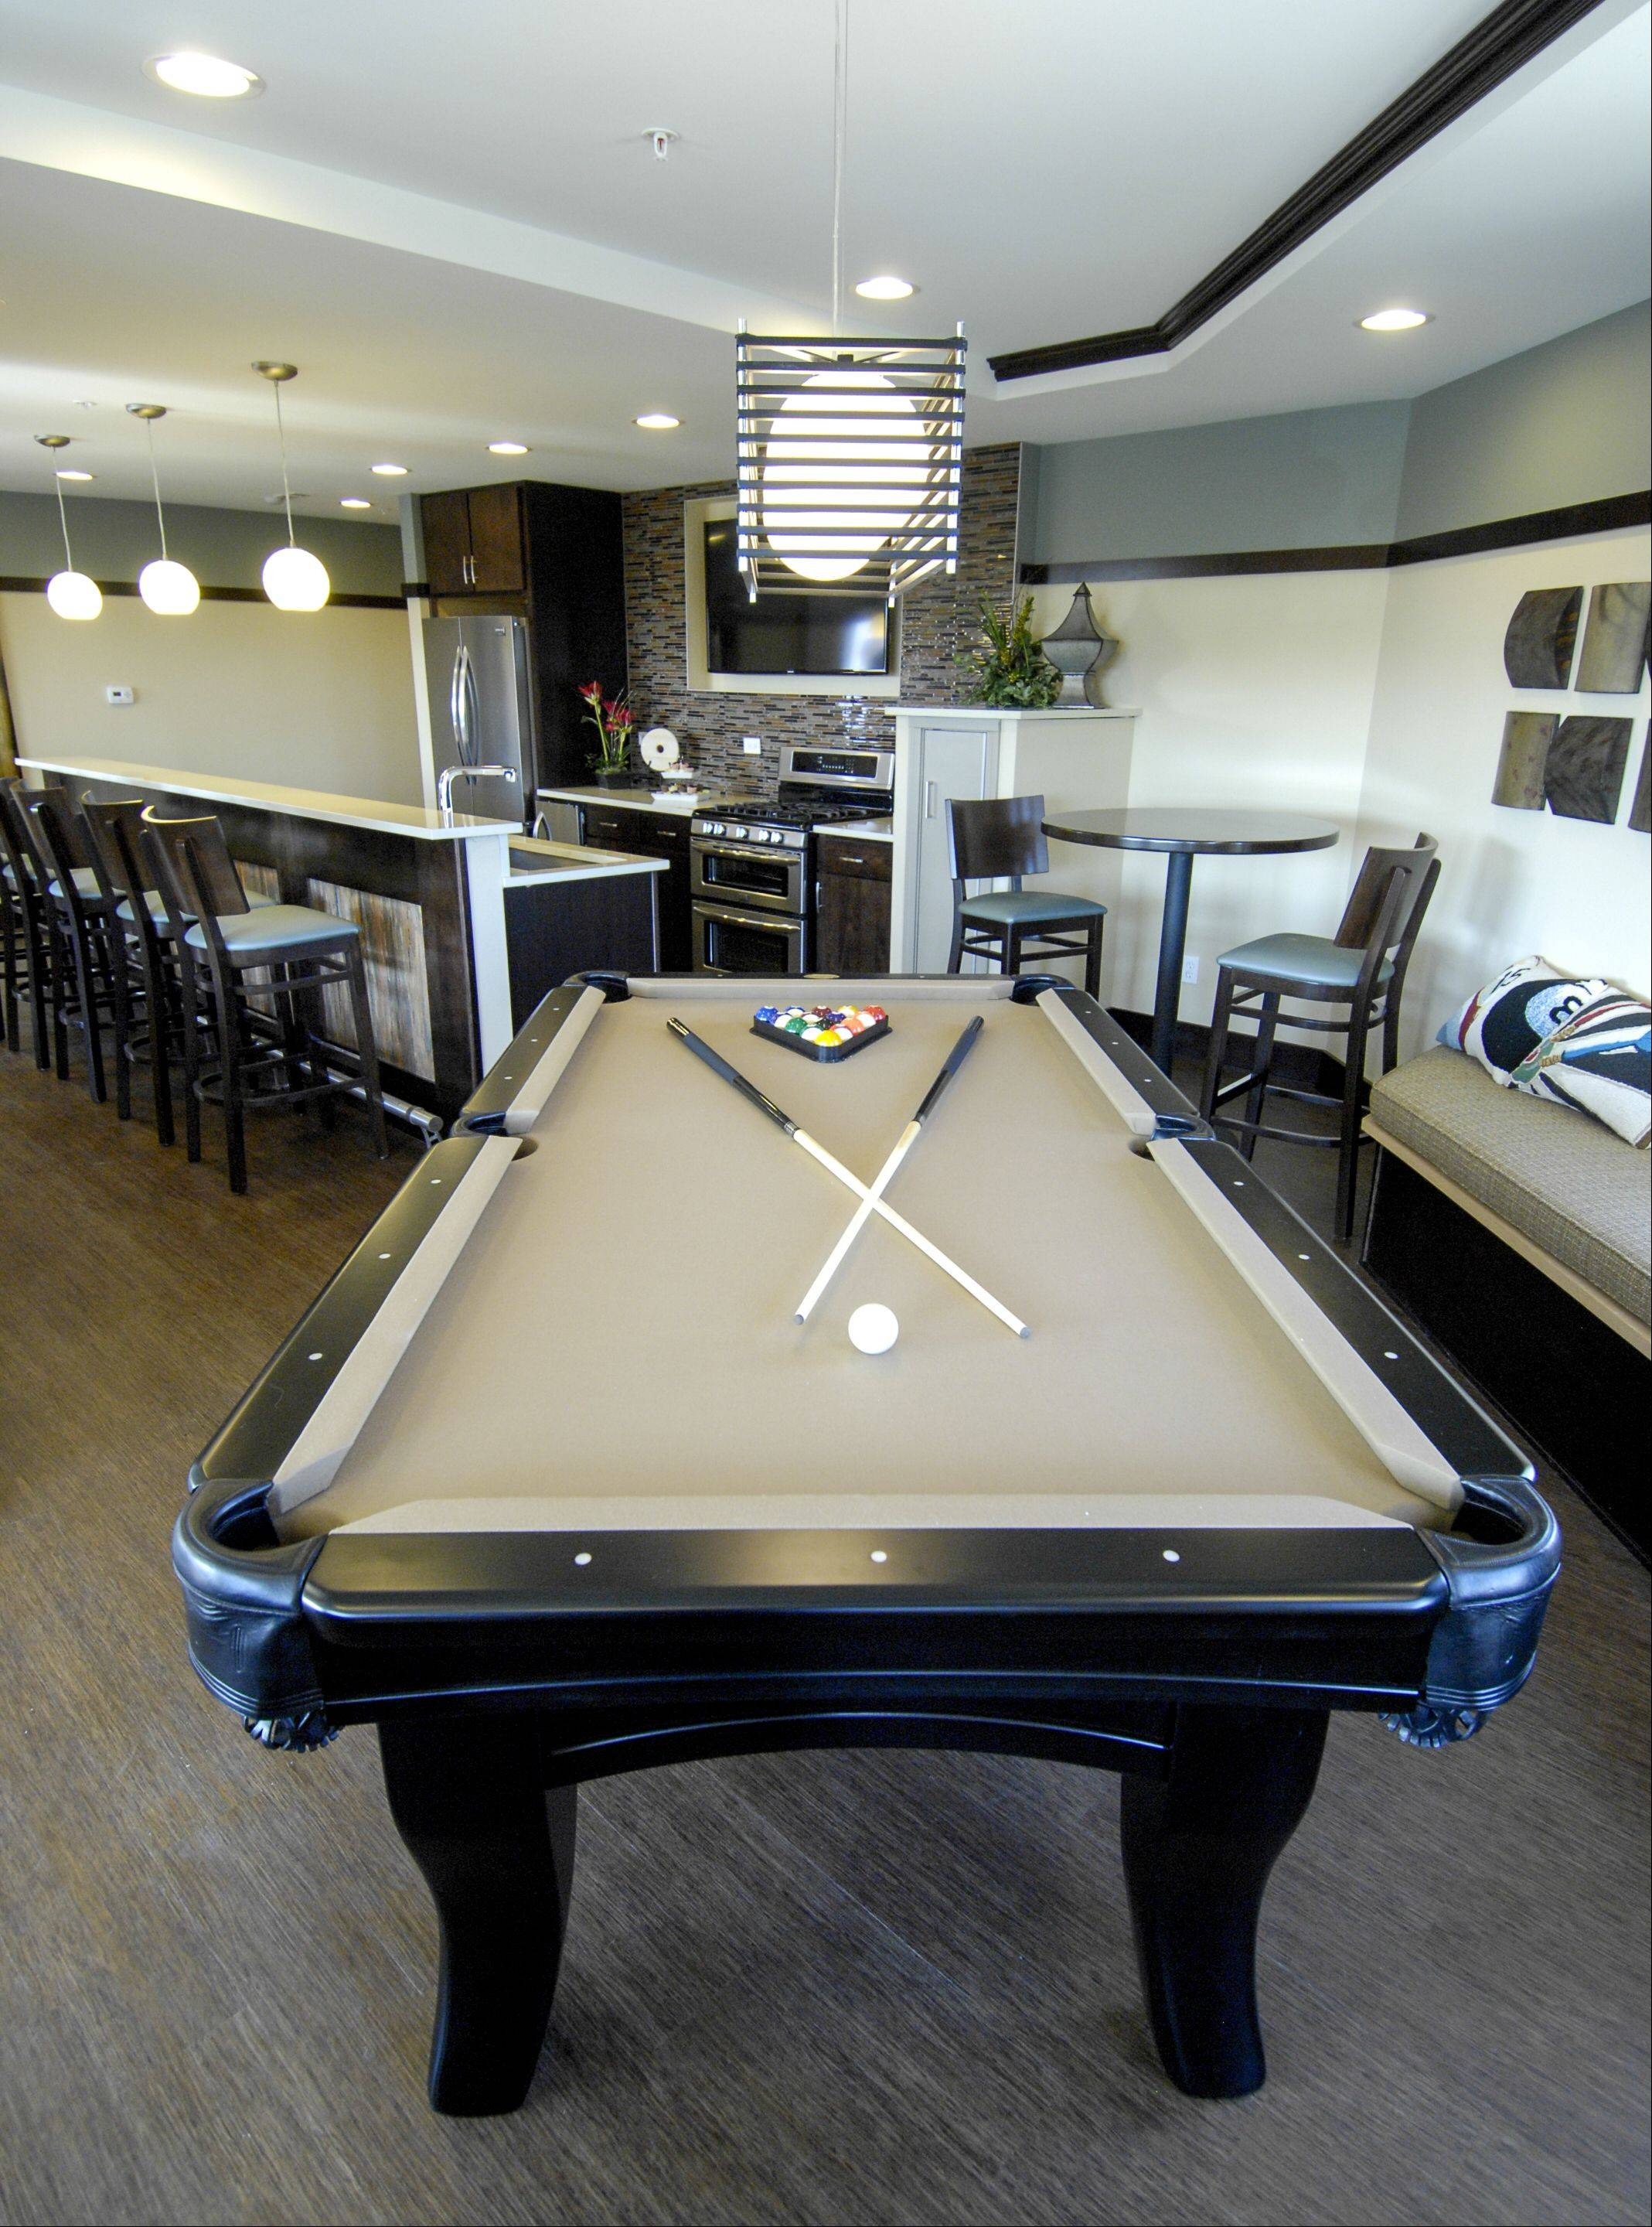 Wheaton 121 has a common room that residents can reserve to use for their own private parties that includes a pool table, full kitchen, fireplace and TVs.